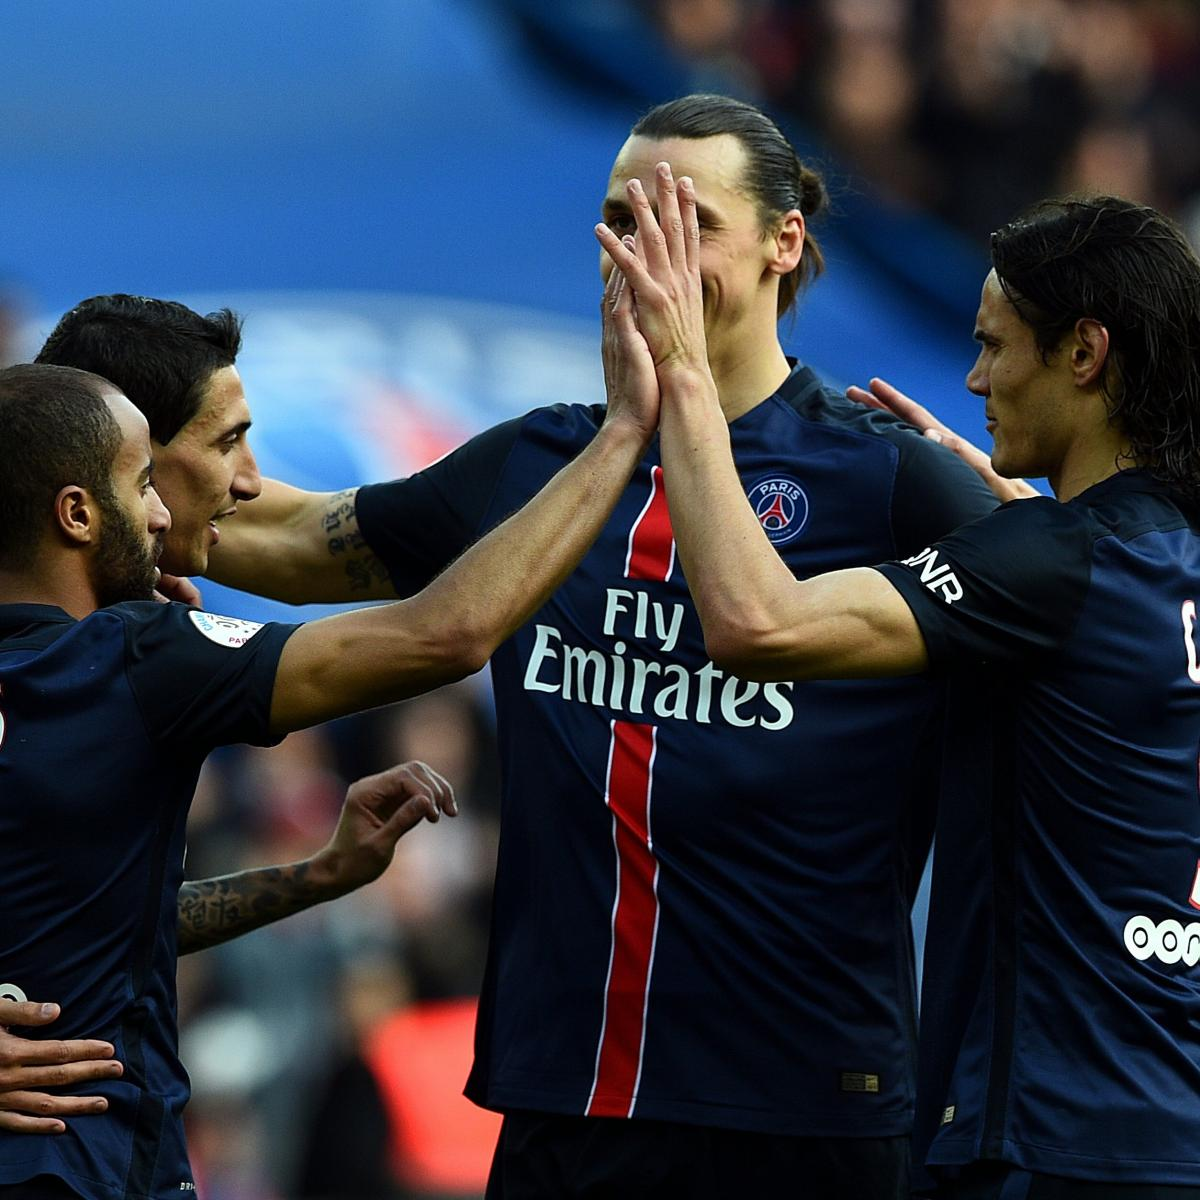 Malmo Vs Psg Winners And Losers From Champions League: PSG Vs. Caen: Winners And Losers From Ligue 1 Game